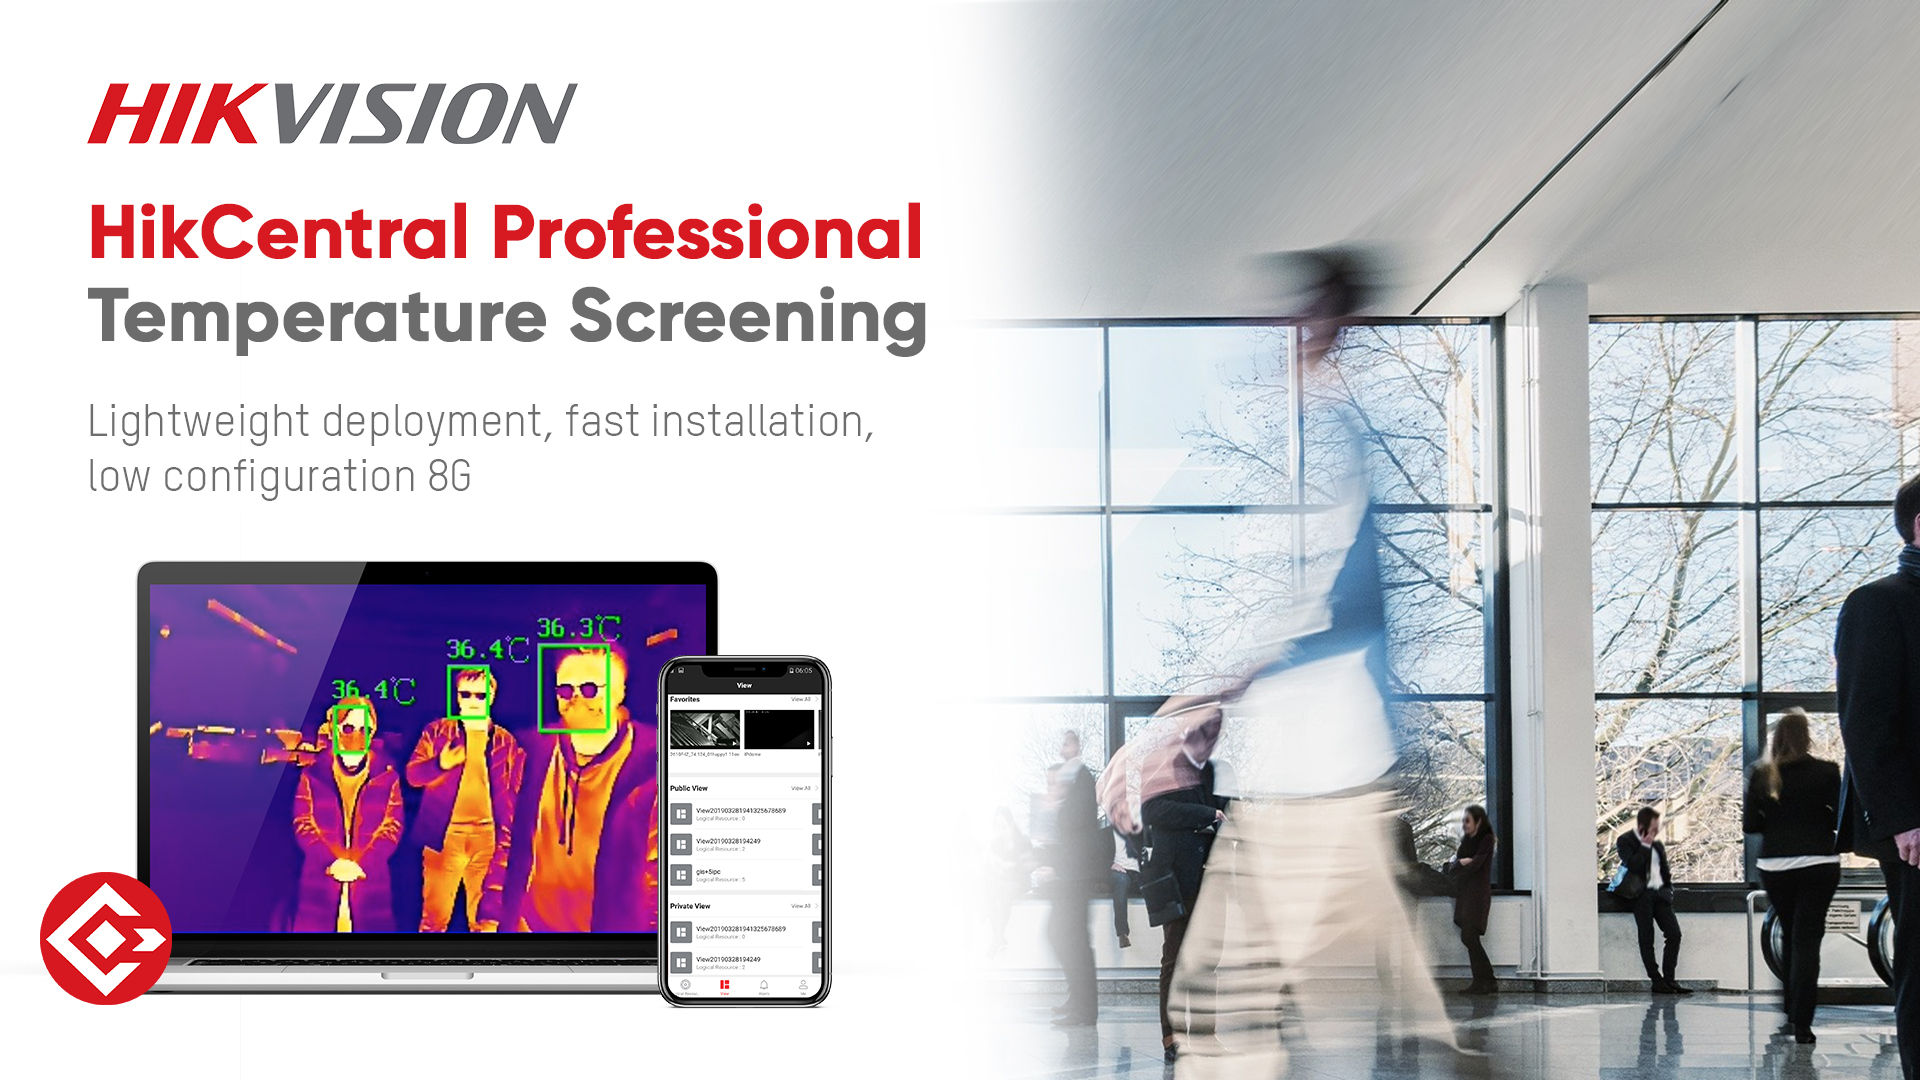 Hikvision HikCentral Professional Temperature Screening